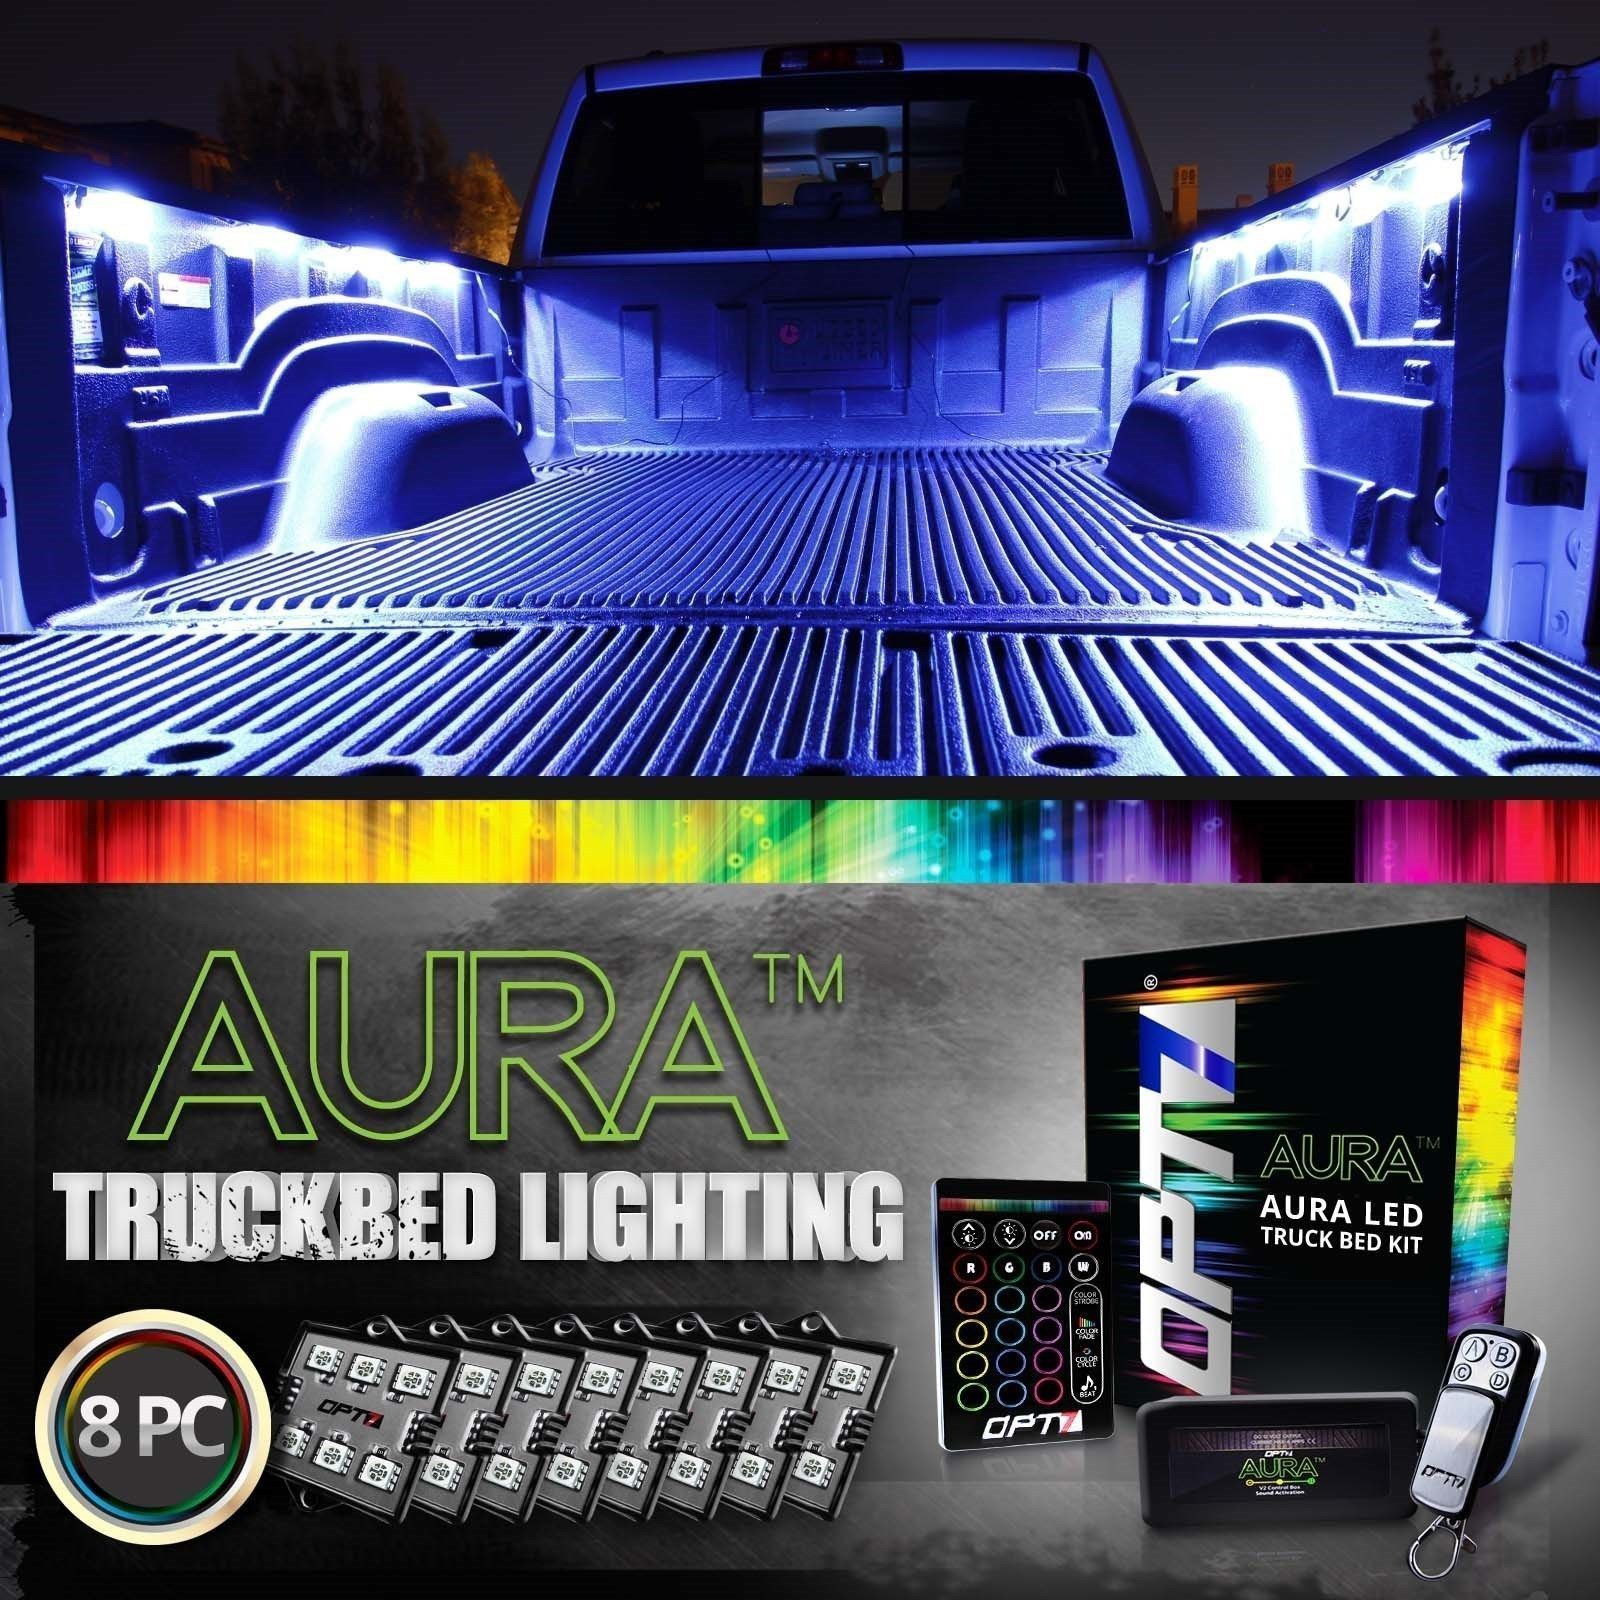 Opt7 8Pc Led Truck Bed Rail Lighting Kit Multicolor White